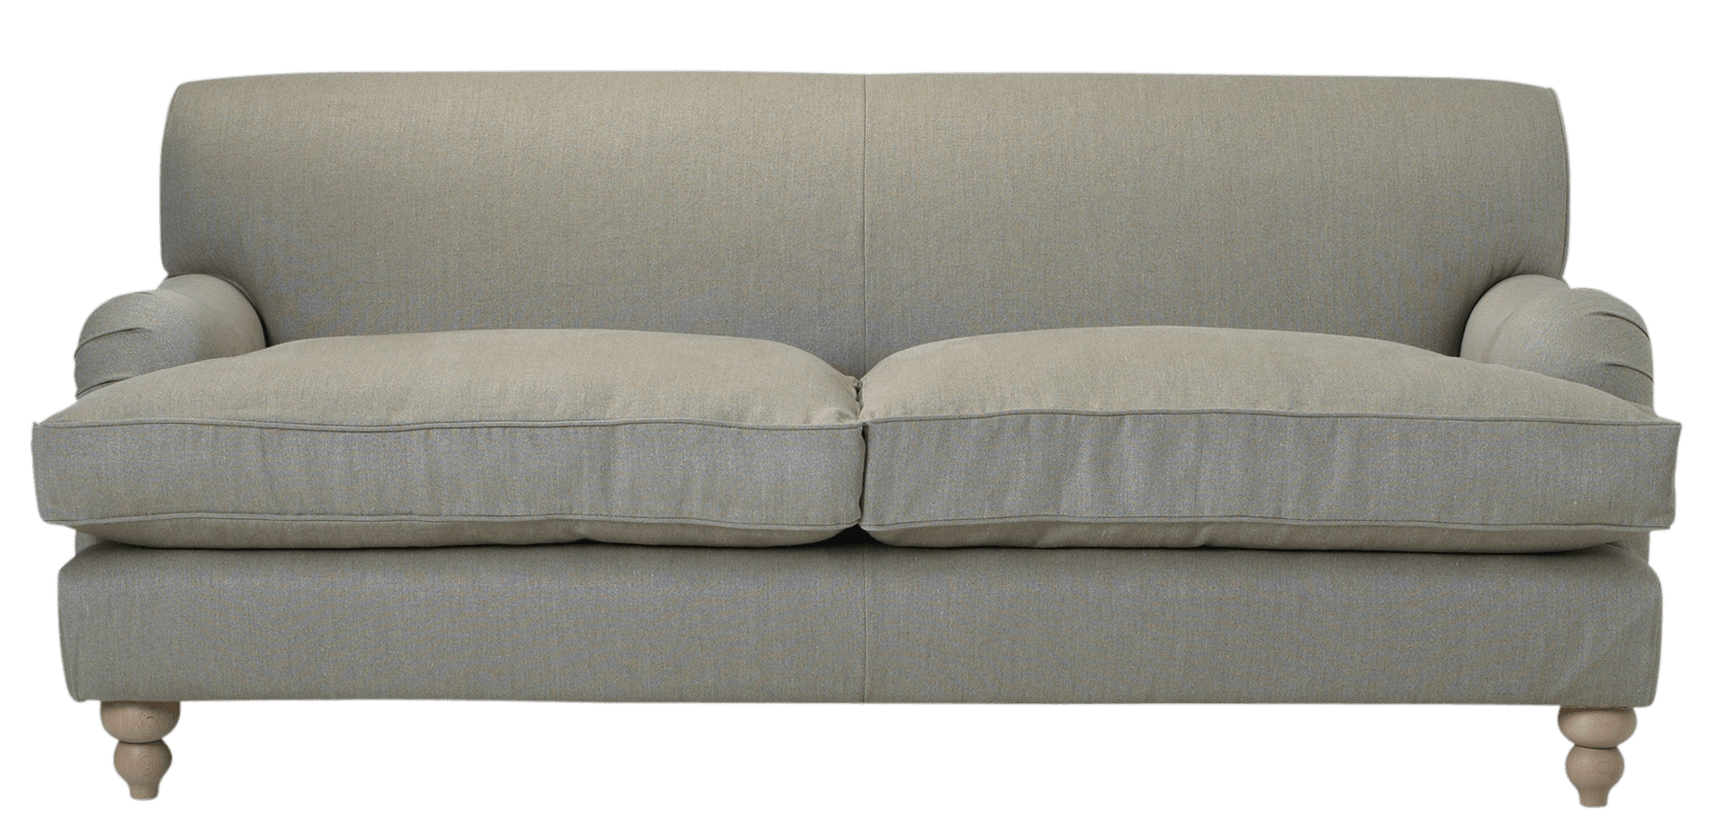 Grey fabric sofa transparent png stickpng - Images of sofa ...